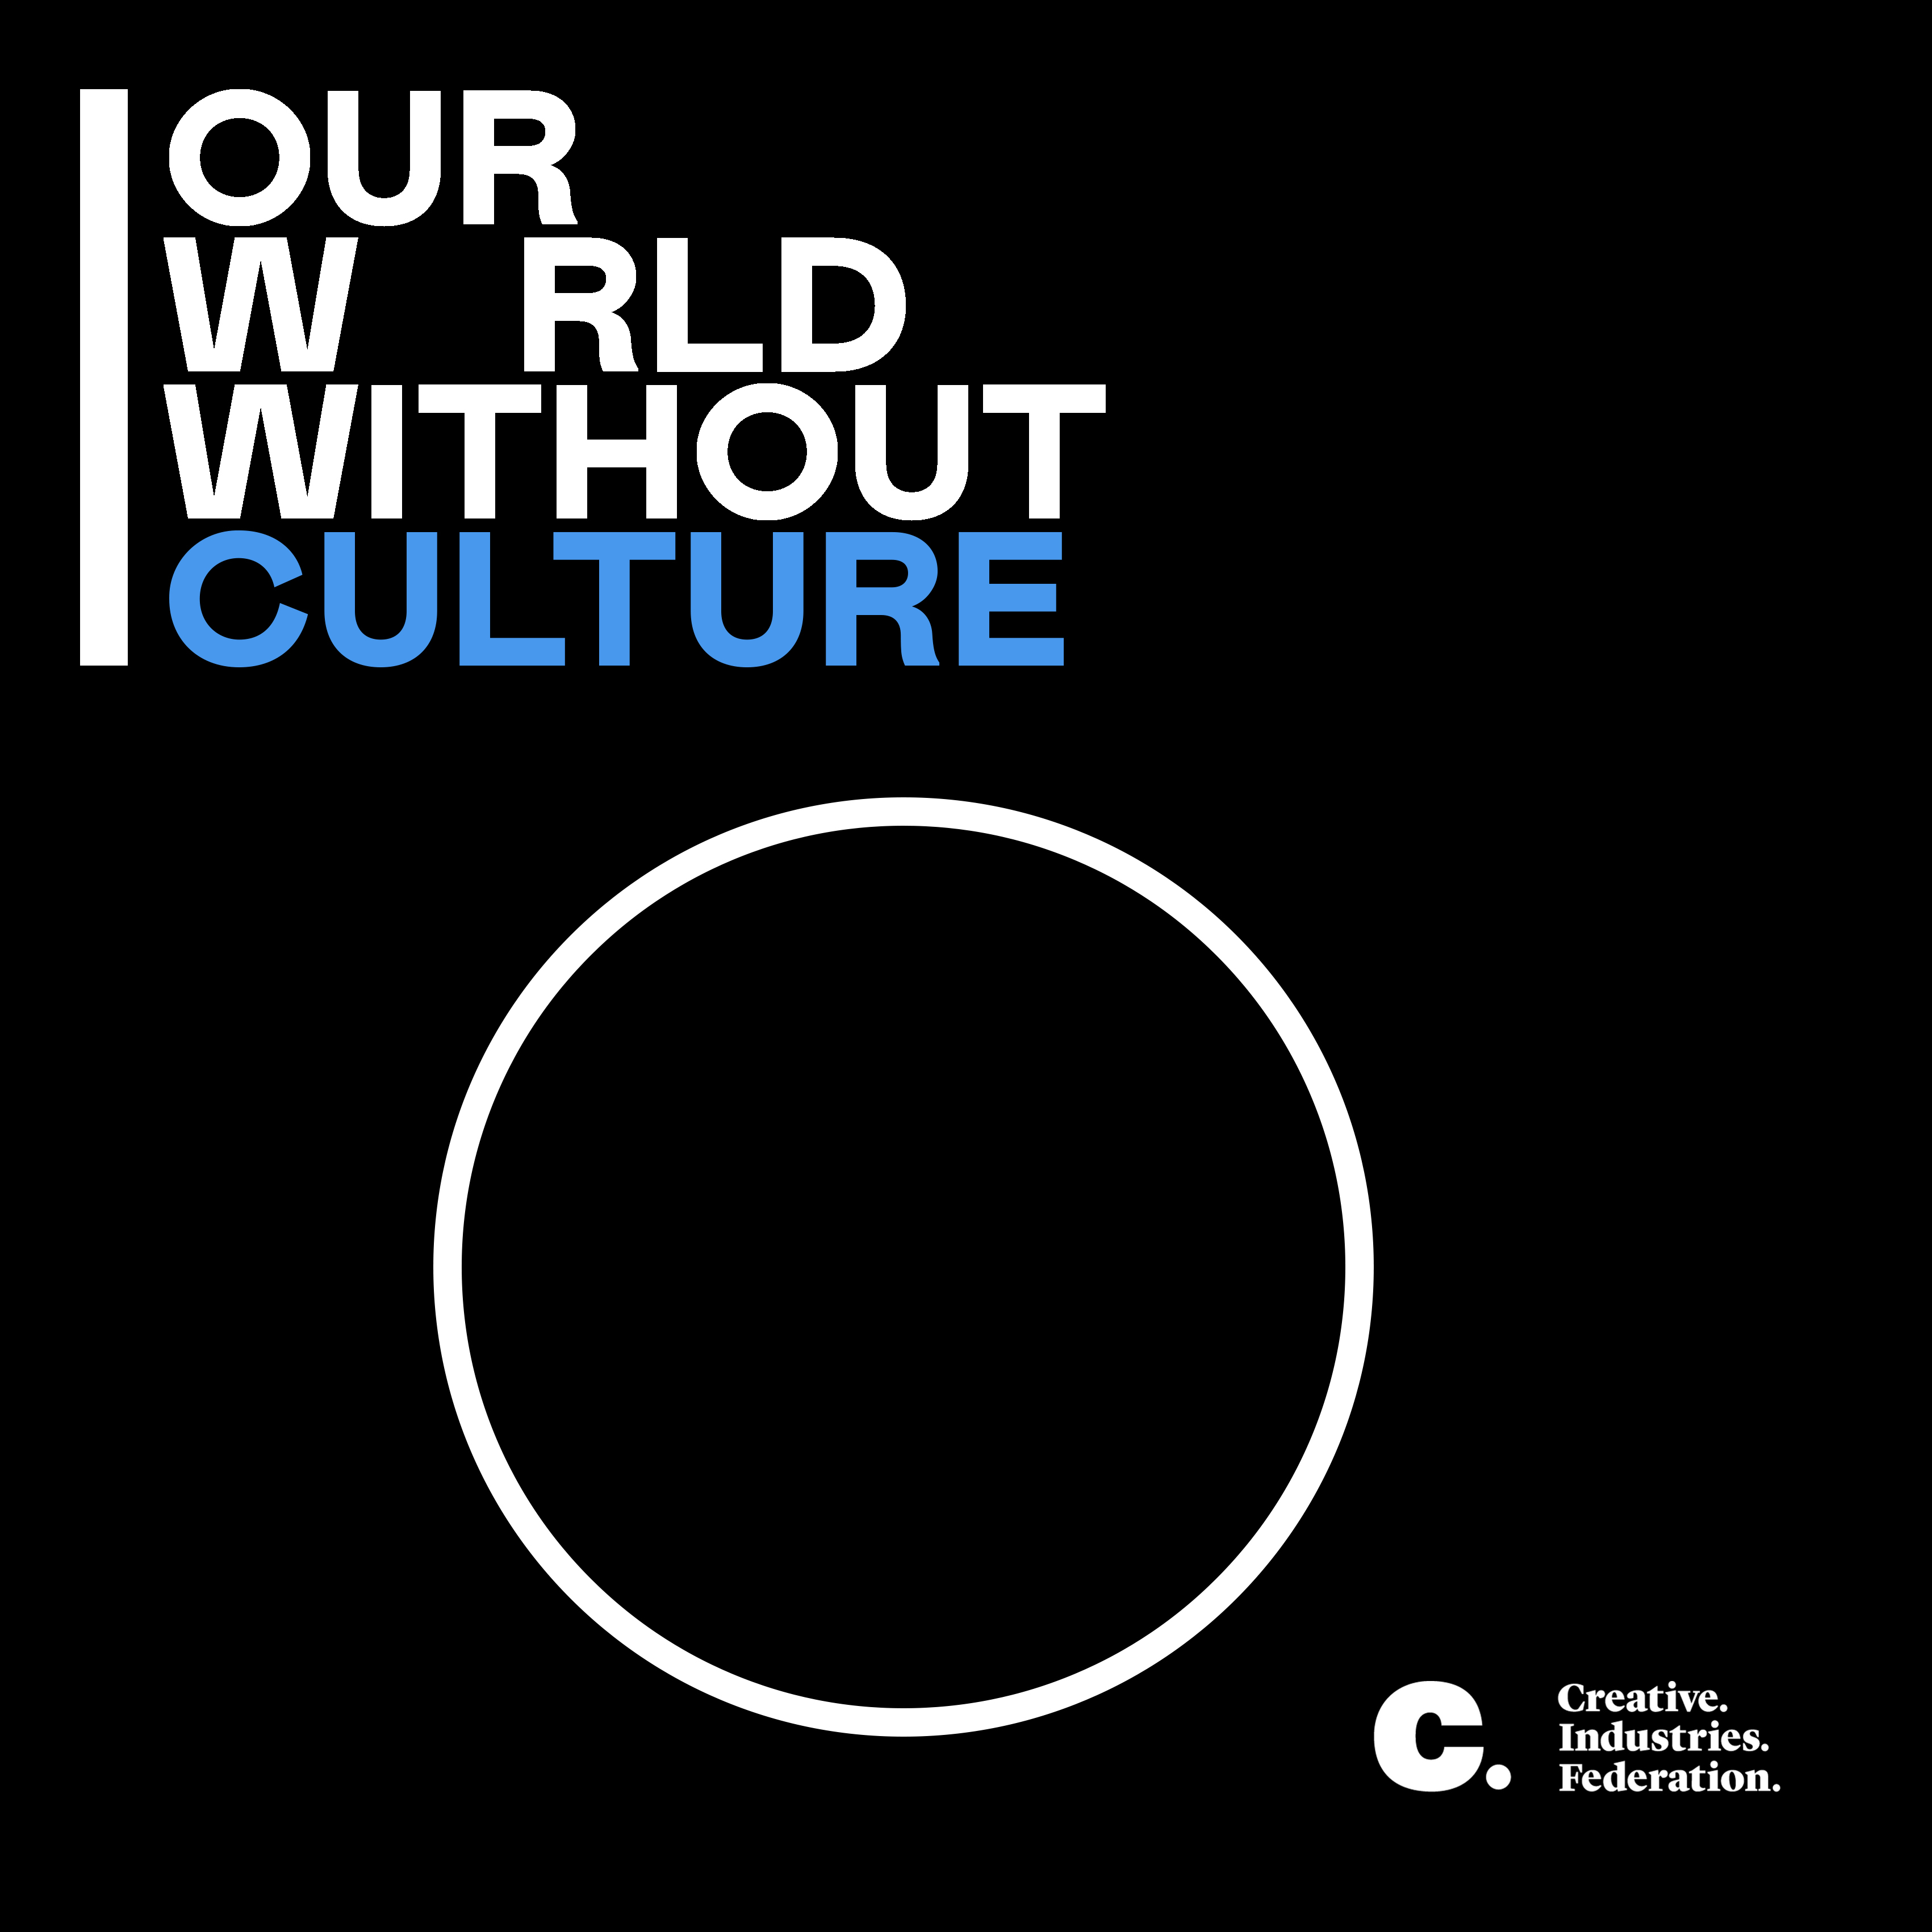 #OurWorldWithout